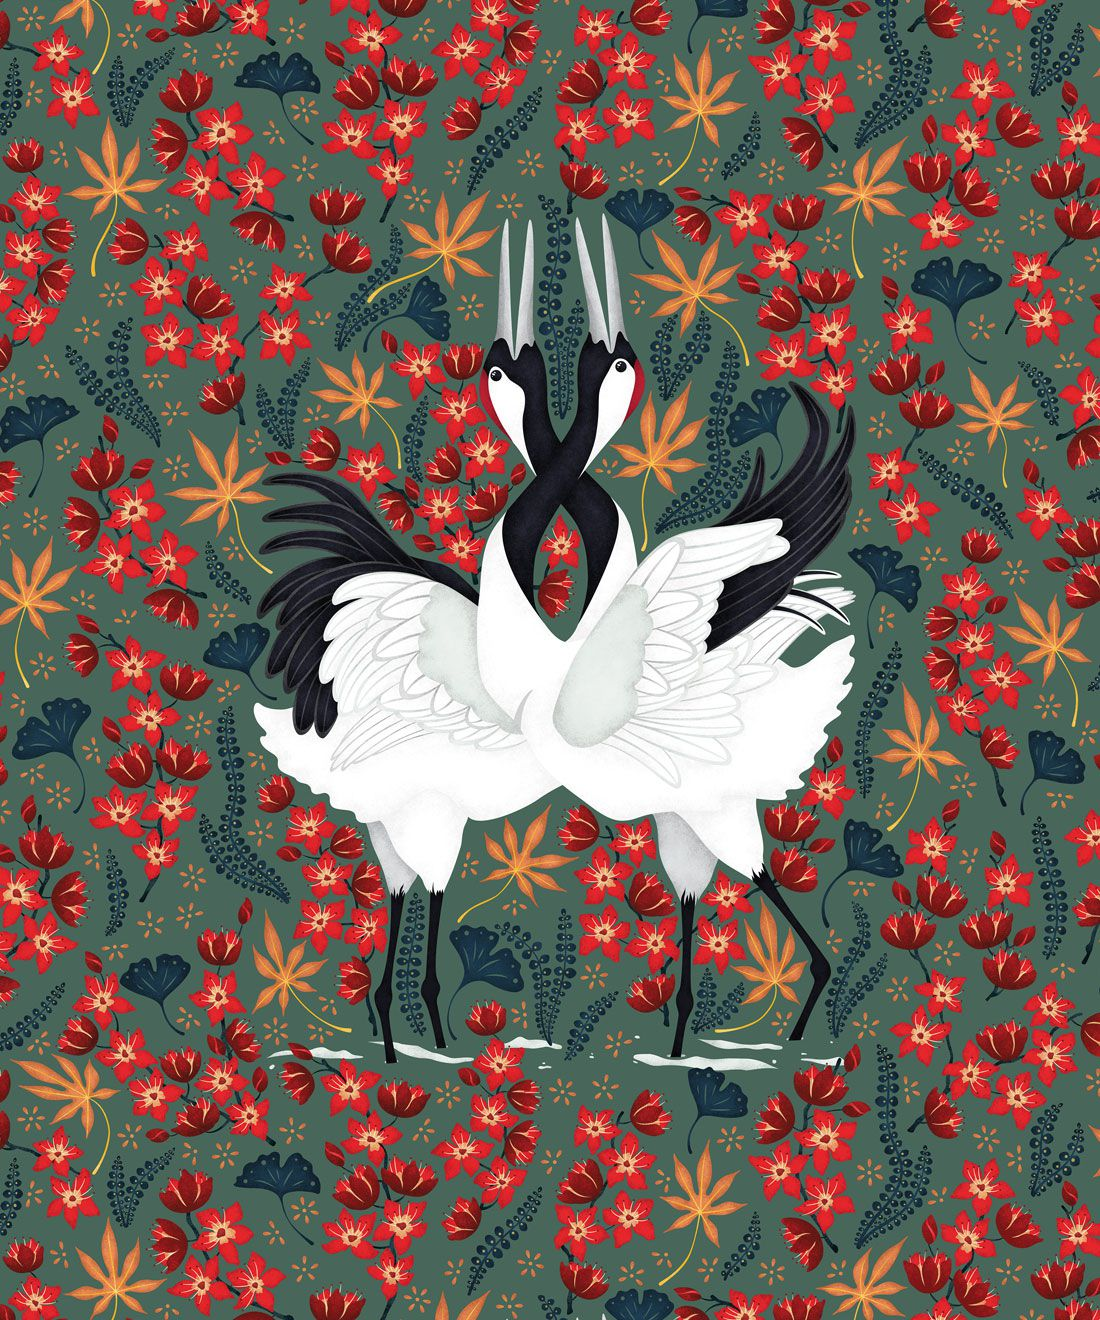 Japanese Cranes Wallpaper • Bird Wallpaper • Red and Green Wallpaper